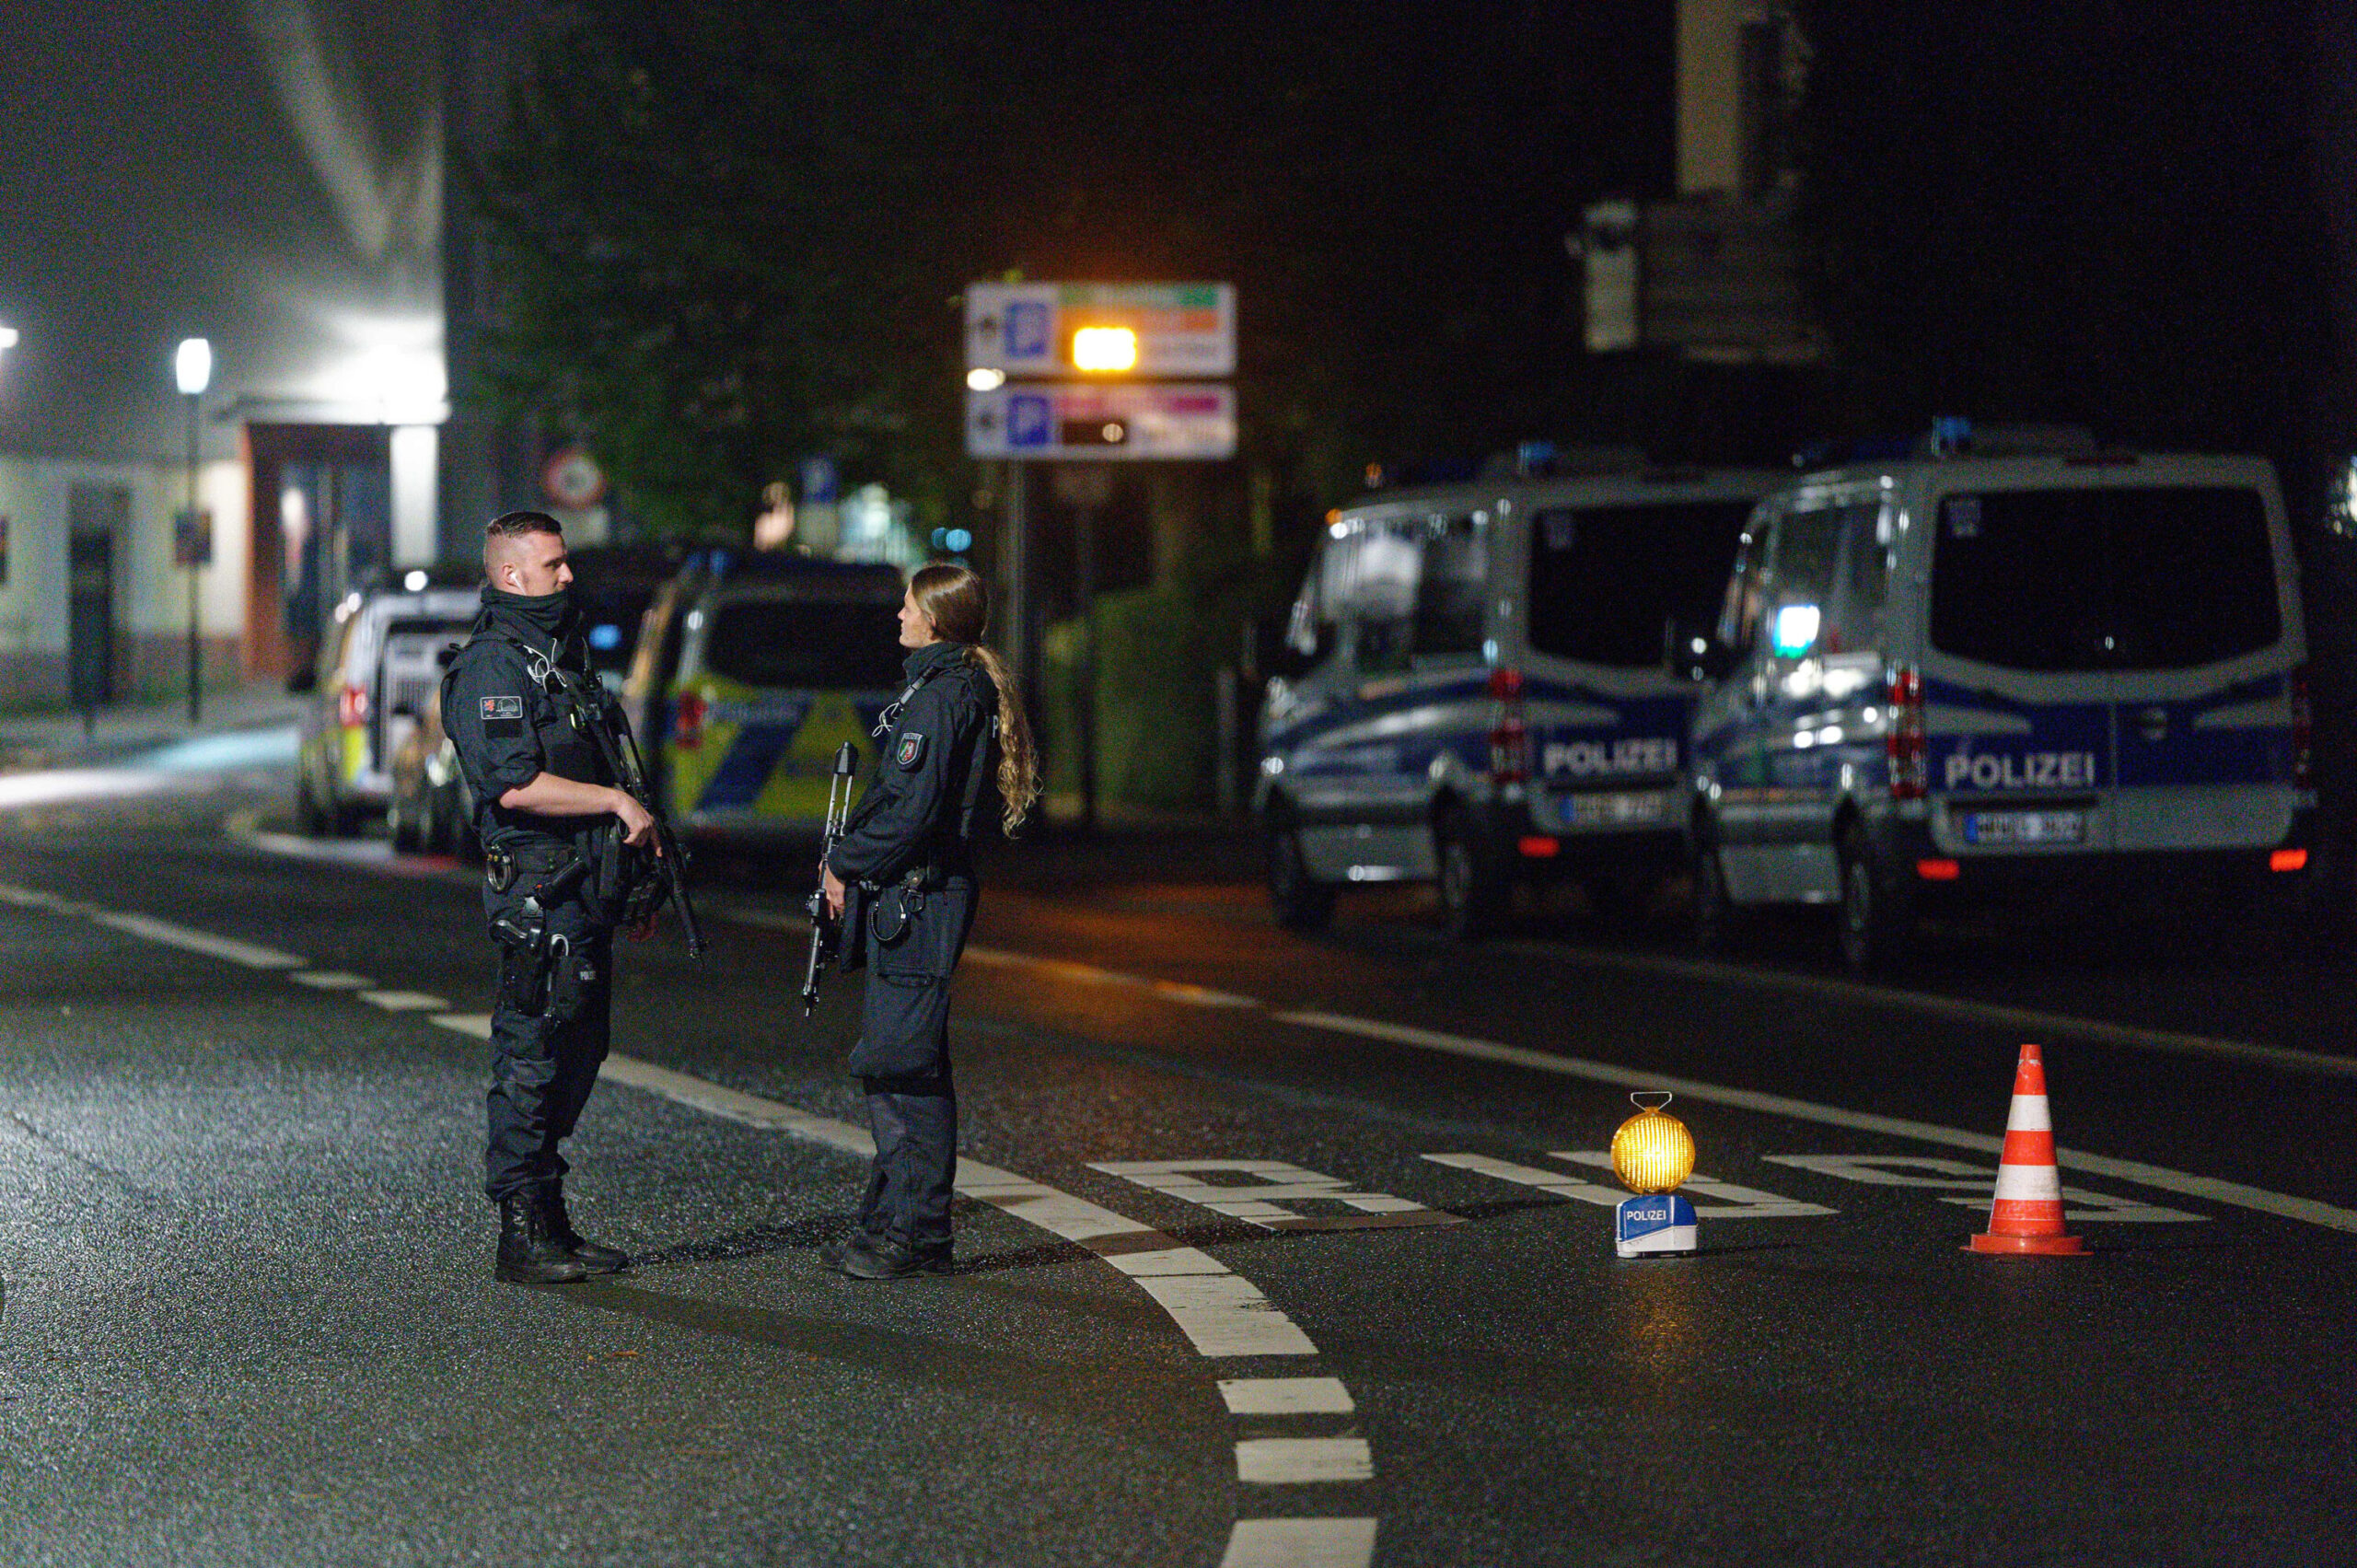 <i>Henning Kaiser/picture alliance/Getty Images</i><br/>Police officers block a street in Hagen on Wednesday evening after warnings of a terror threat against a synagogue.